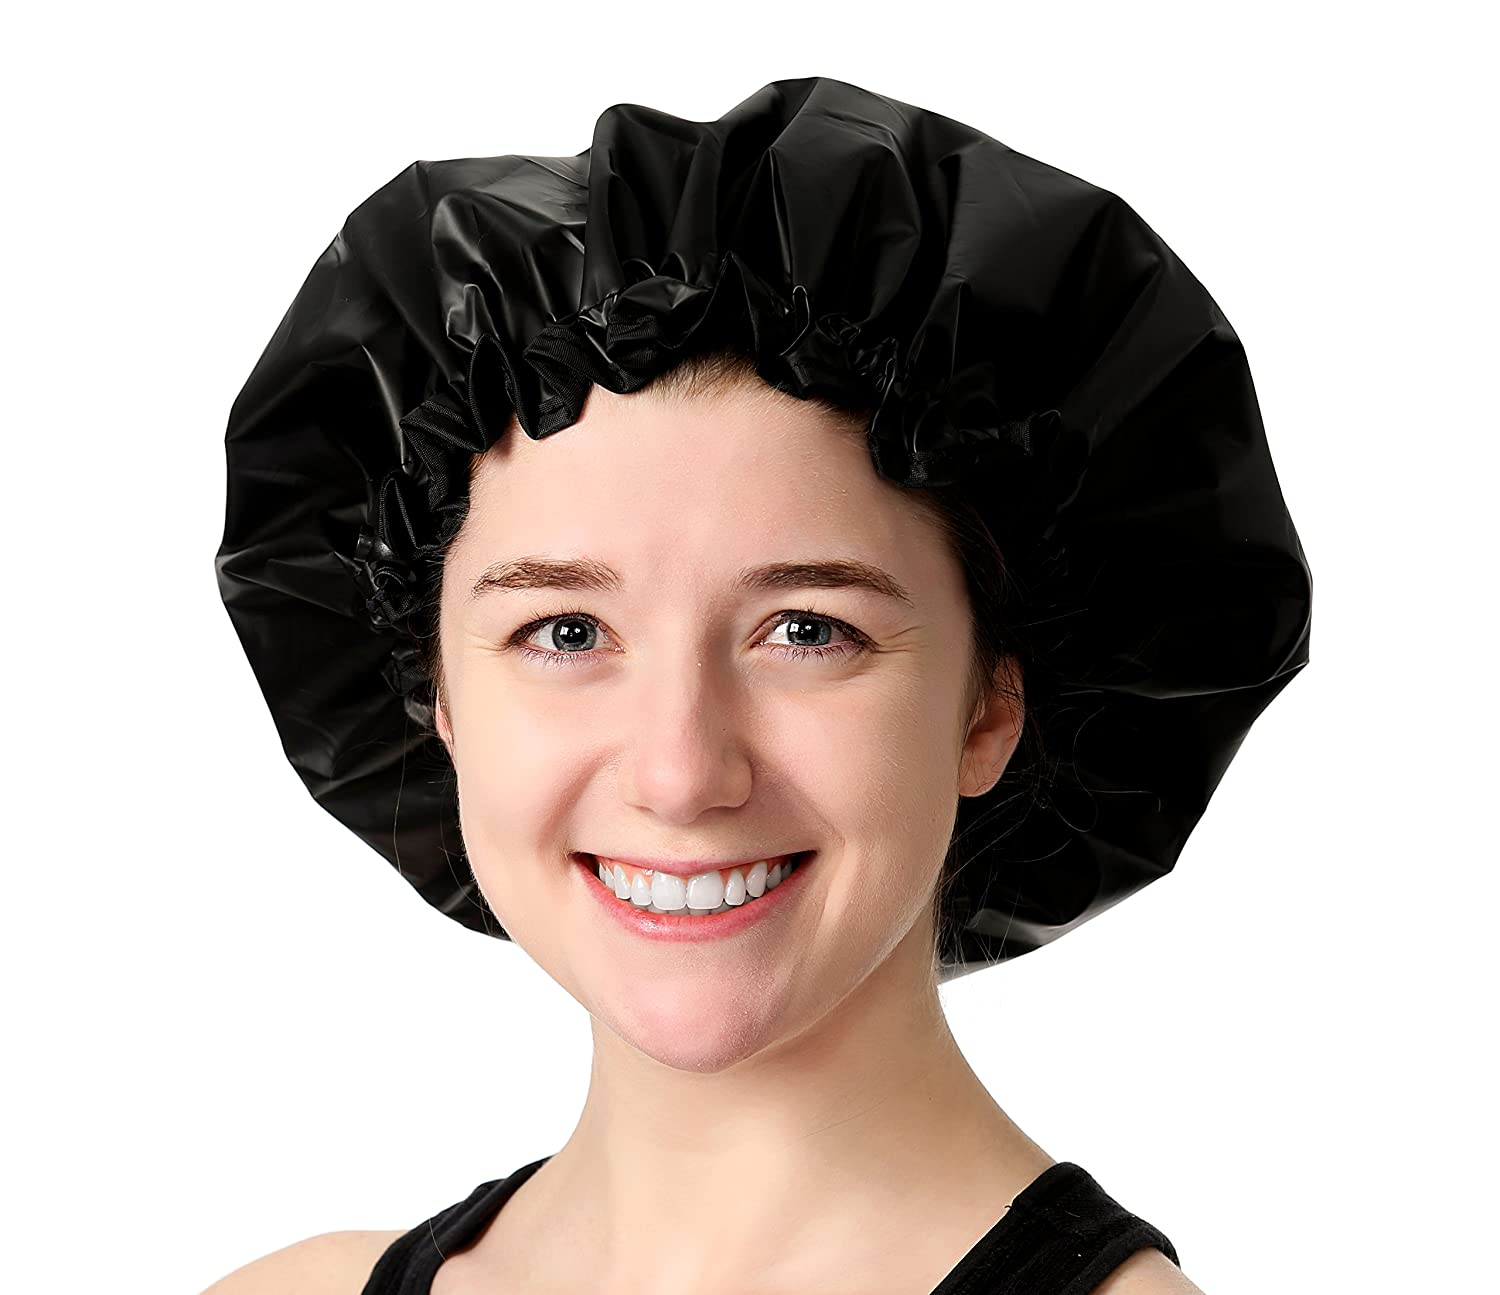 Adjustable Large Shower Cap - The Satin Dream WaterProof ShowerCap By Simply Elegant: The Best in Medium to Long Hair Products and Protection (Patent Pending)